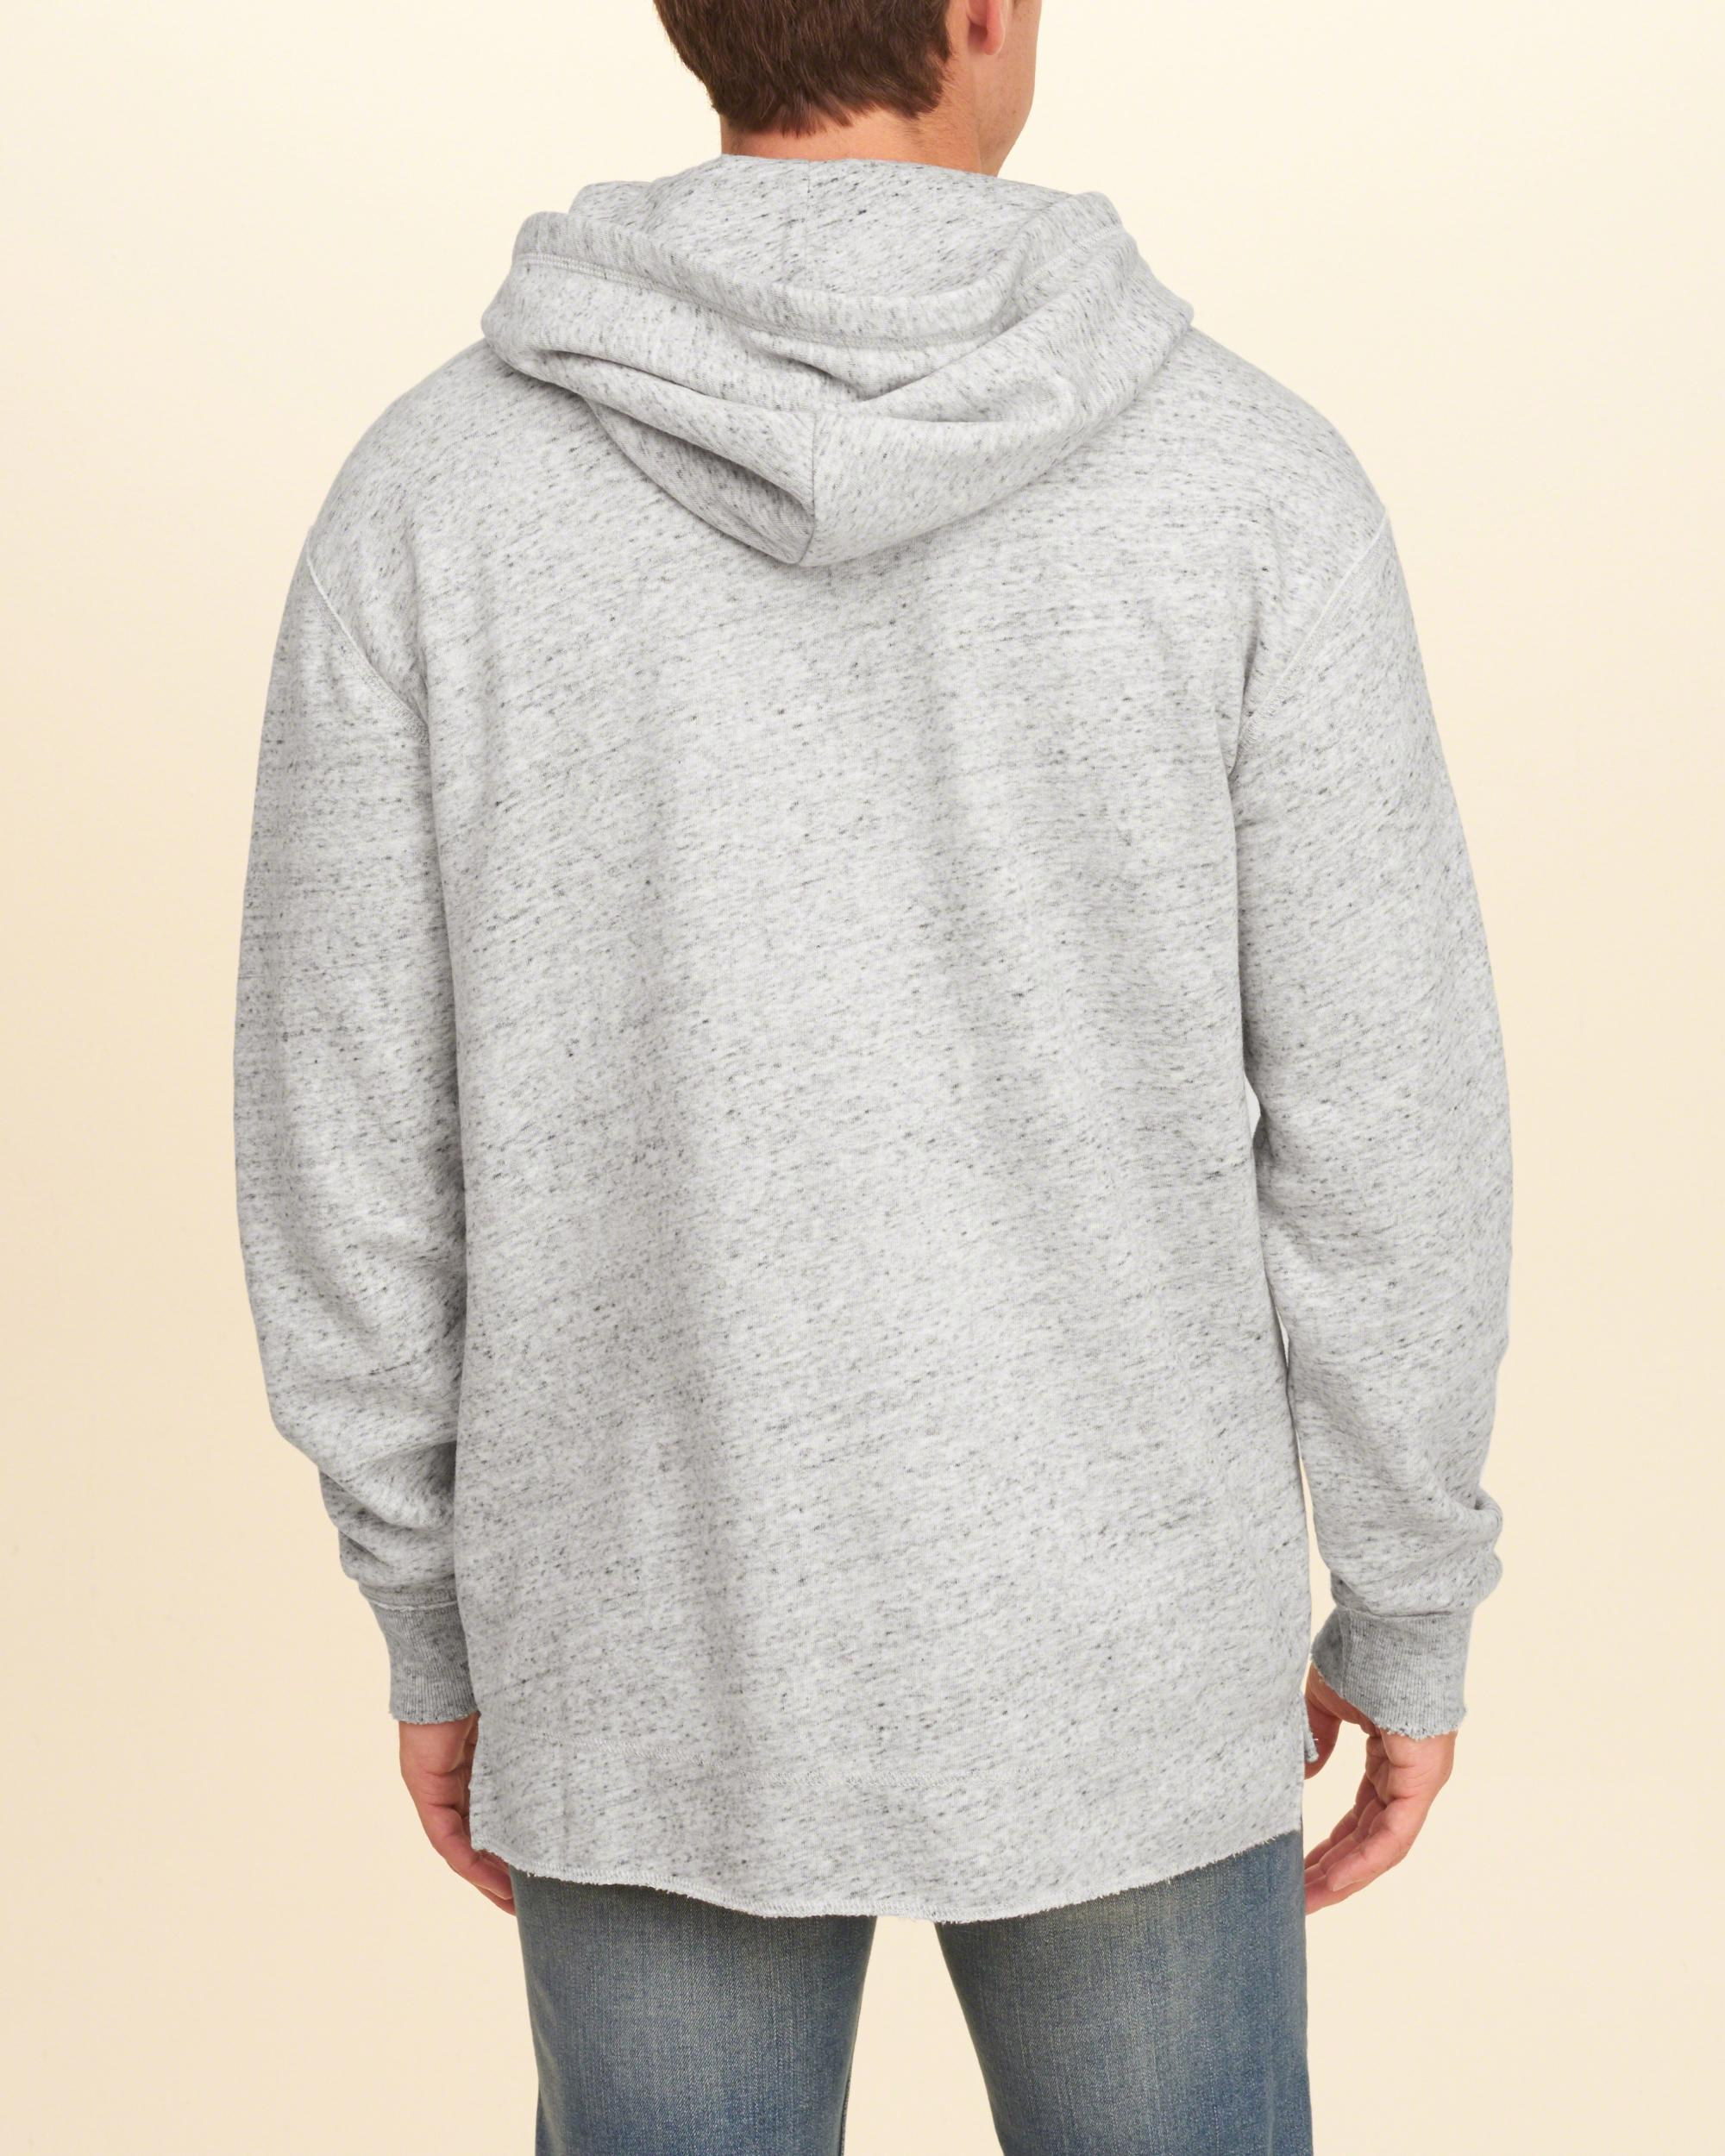 Lyst - Hollister Textured Ripped Hoodie in Gray for Men